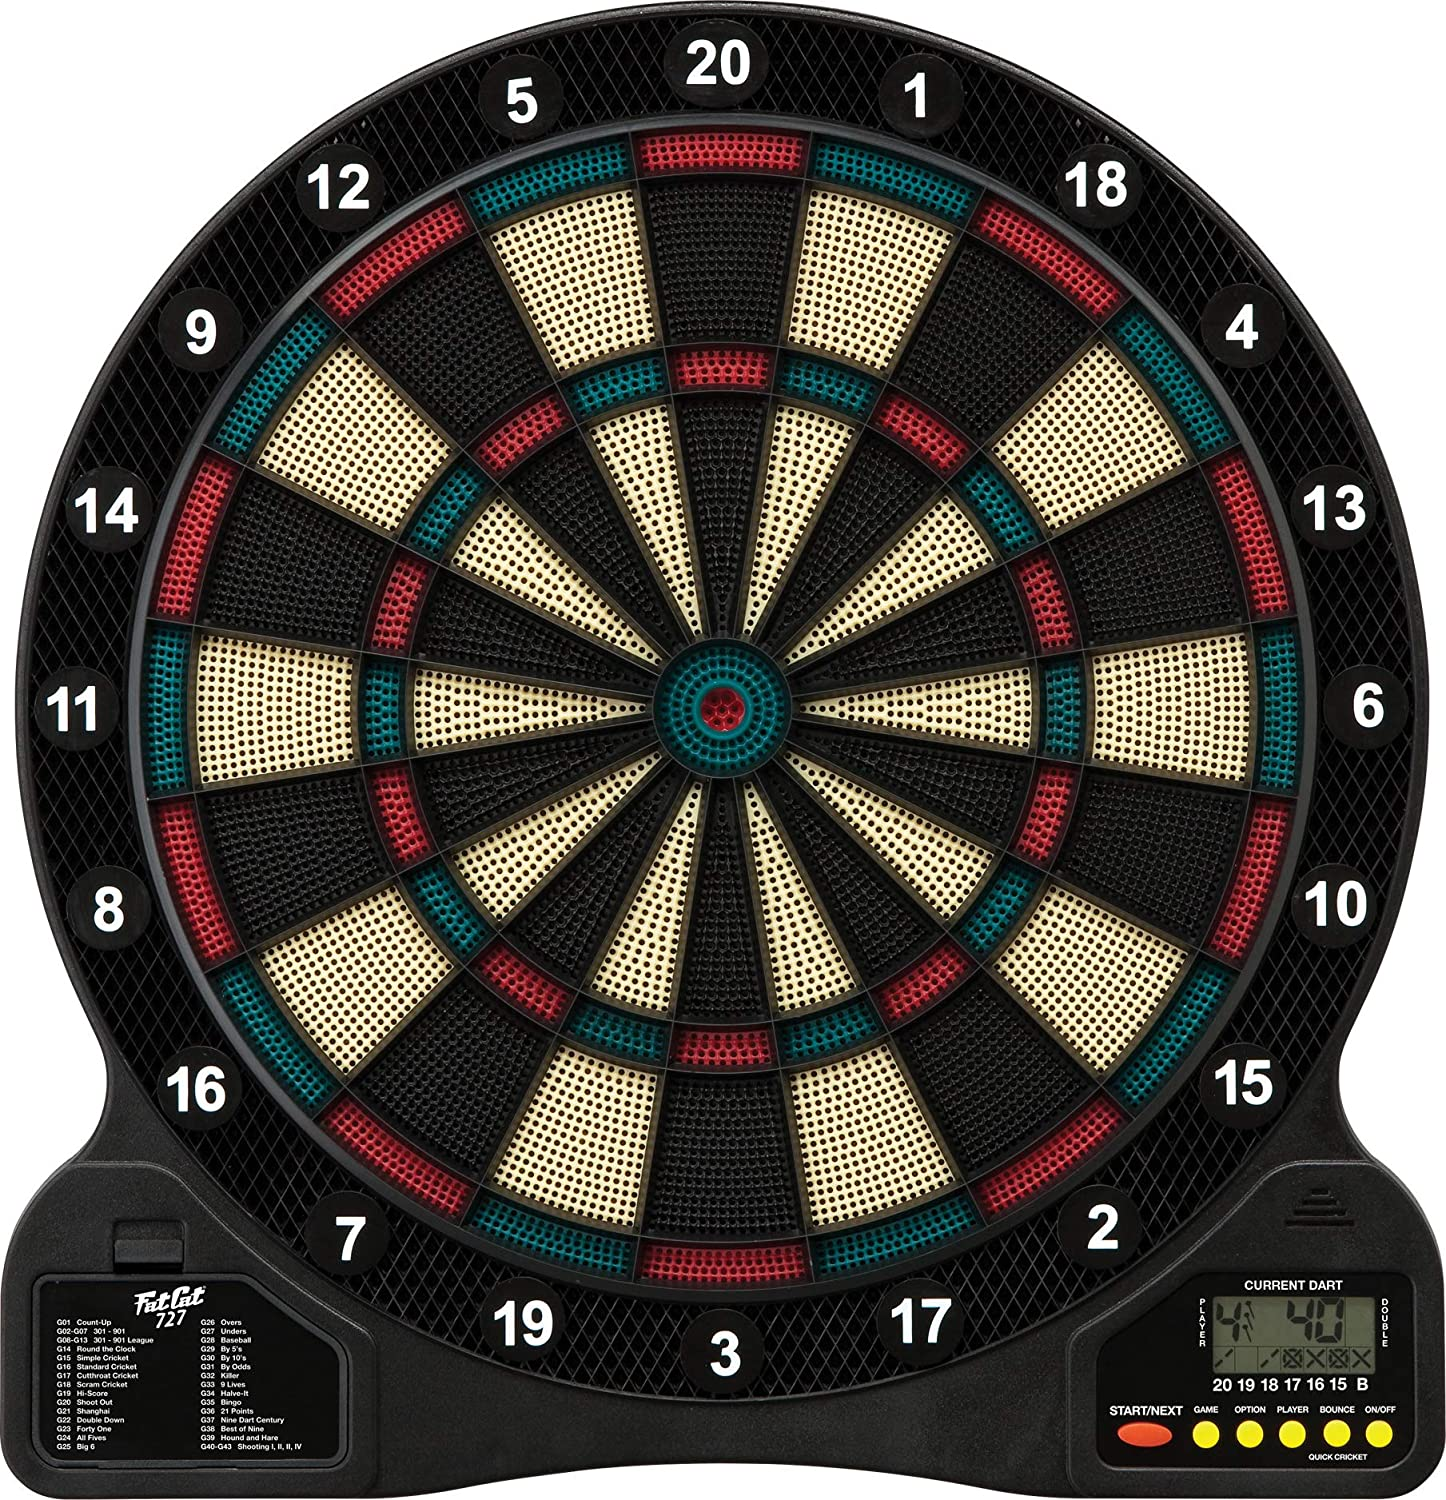 Fat Cat 727 Electronic Dartboard, Easy To Use Button Interface, Automatic Voice Feedback, Included Darts And Built In Storage, Mulitplayer For Up To 8 Players, 43 Games 201 Options : Dartboards : Sports & Outdoors